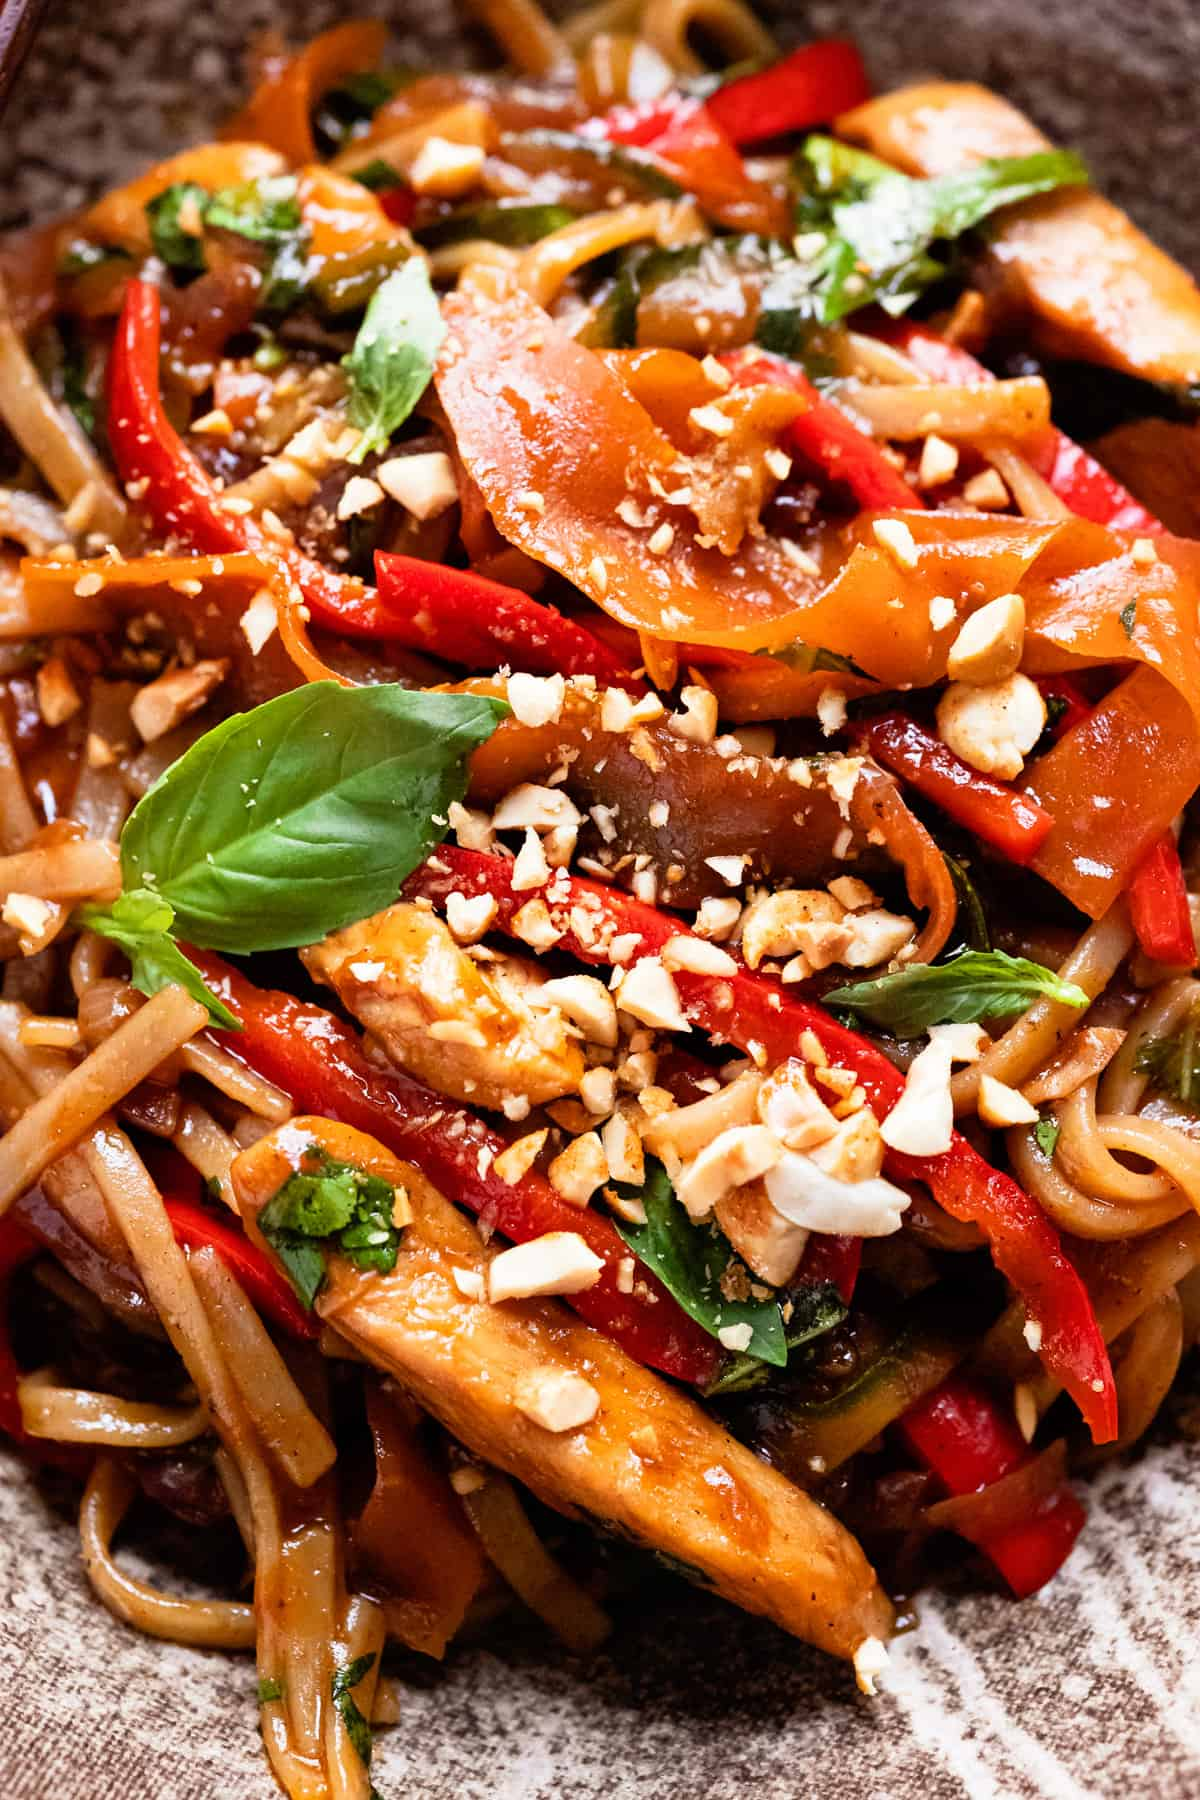 15 Minute drunken noodles with chopped peanuts. Close up.